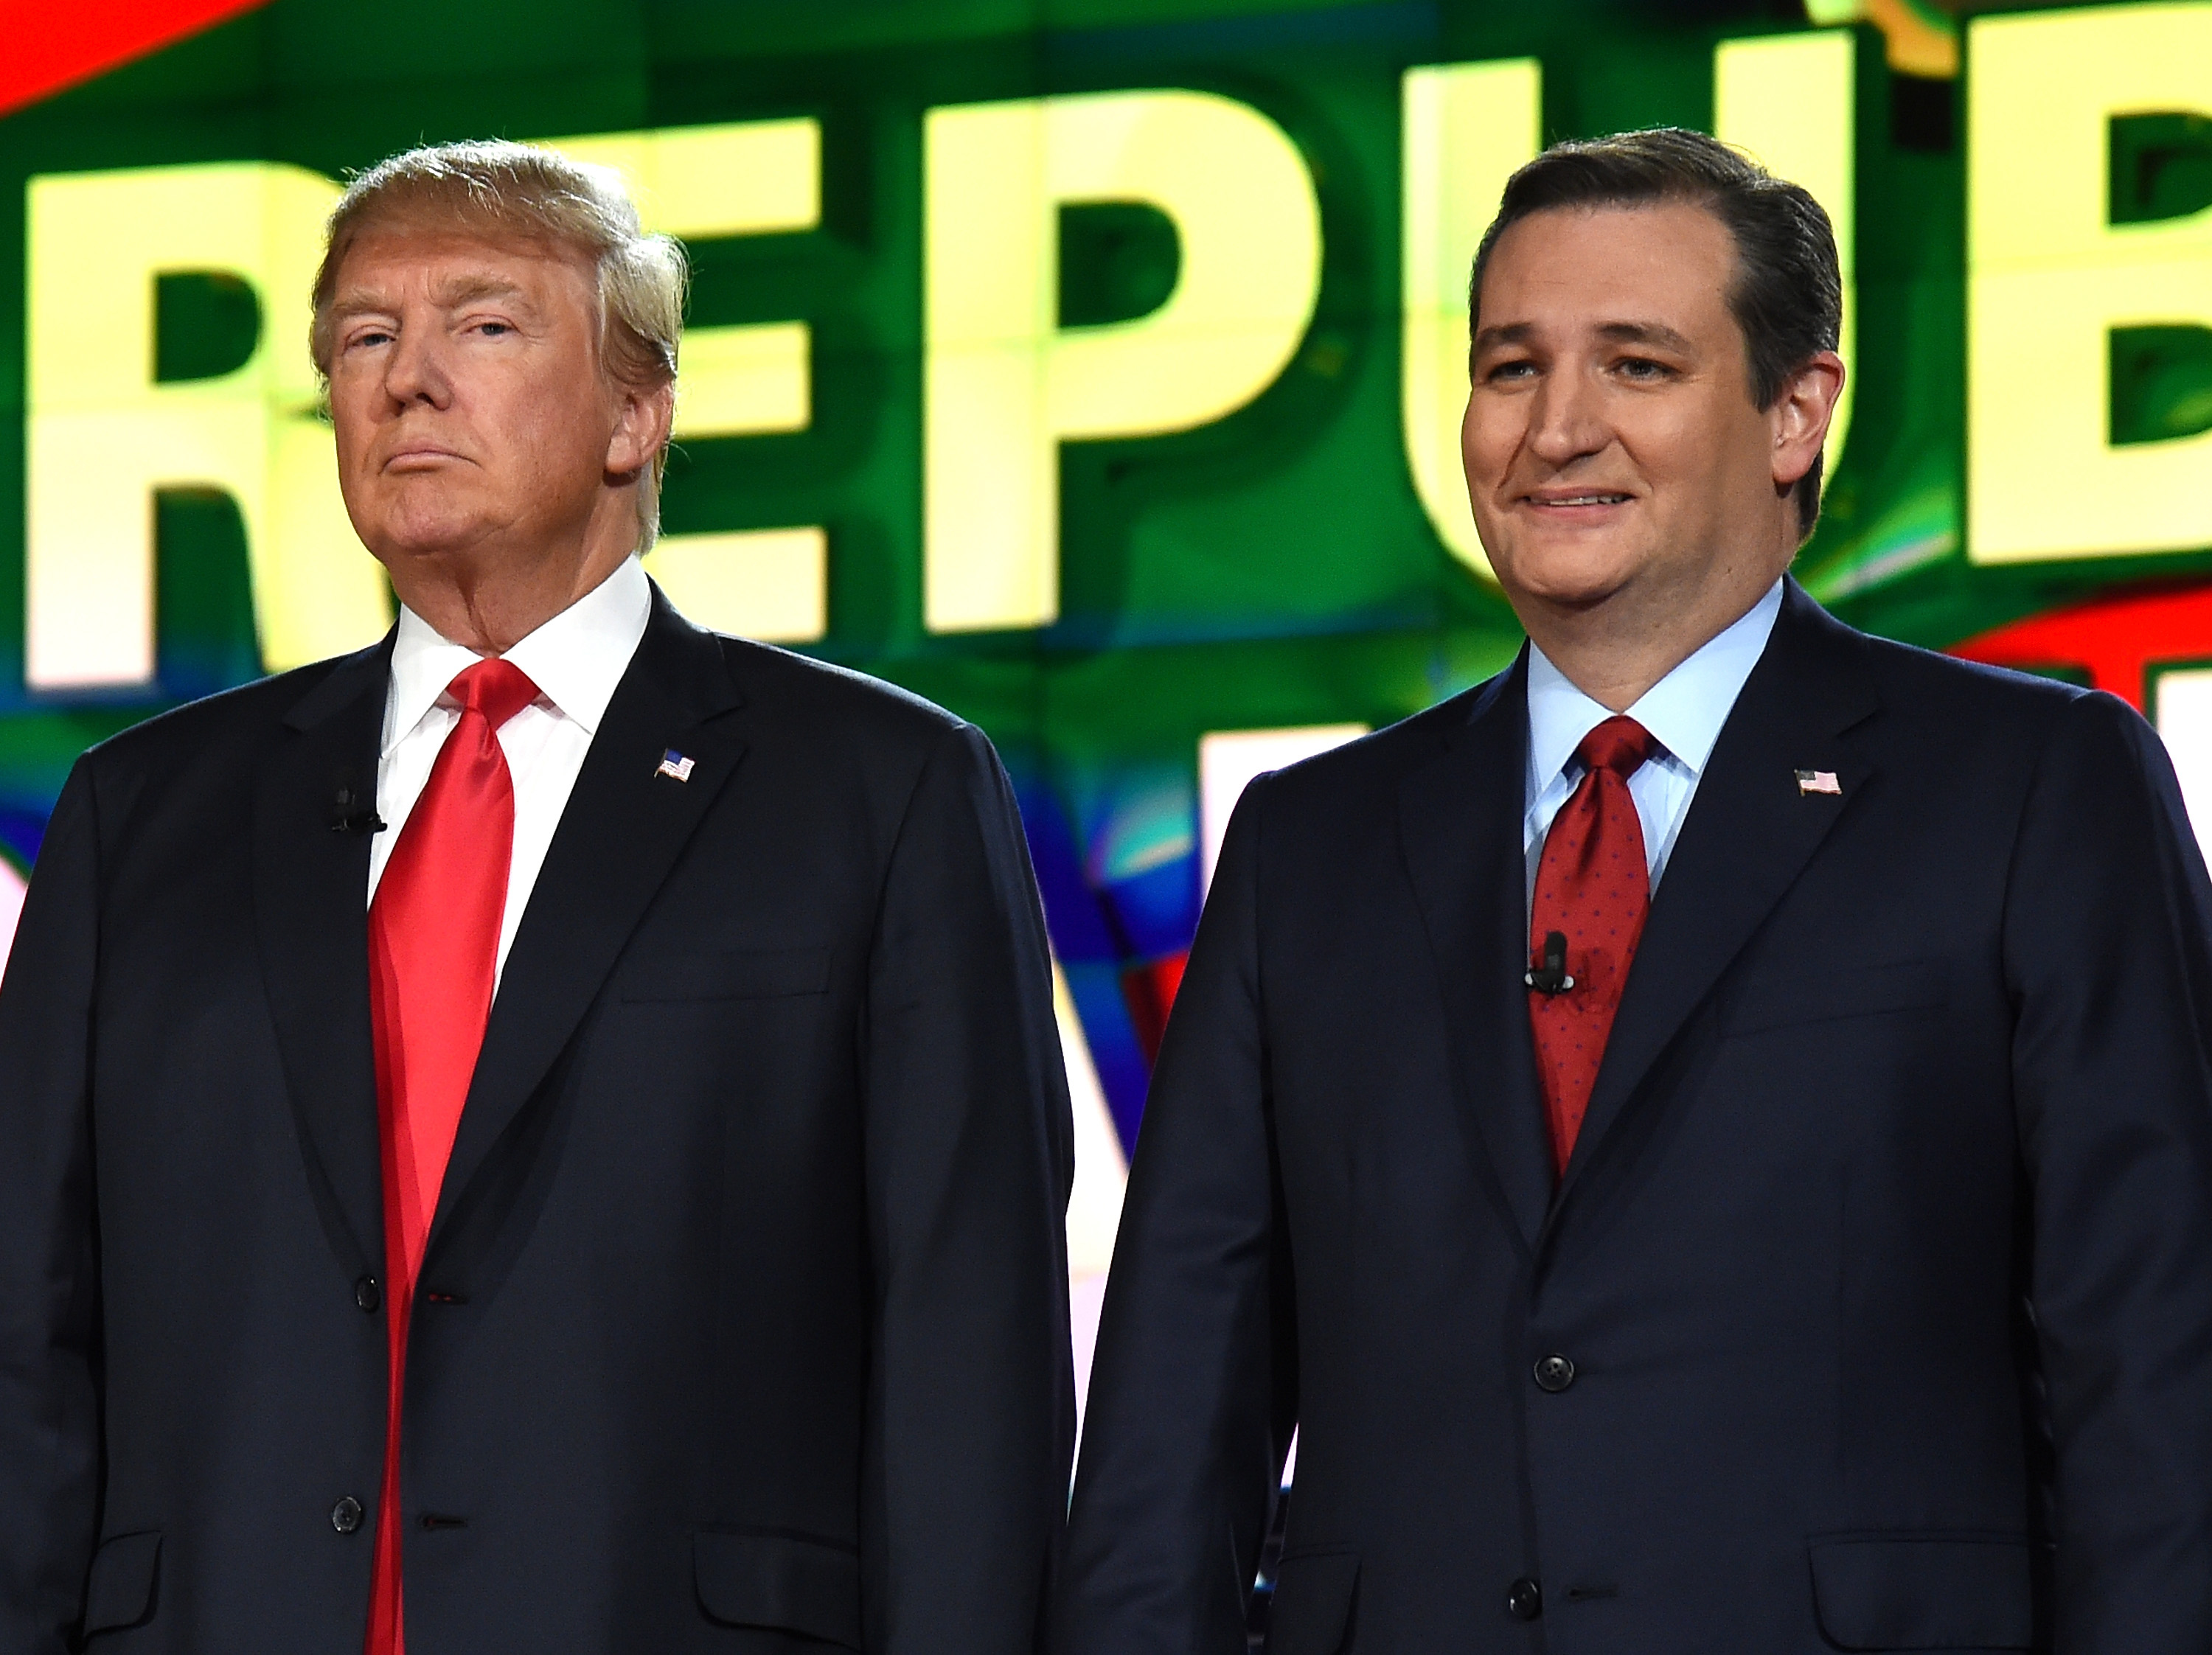 Donald Trump and Ted Cruz during the CNN presidential debate at The Venetian Las Vegas on Dec. 15, 2015.